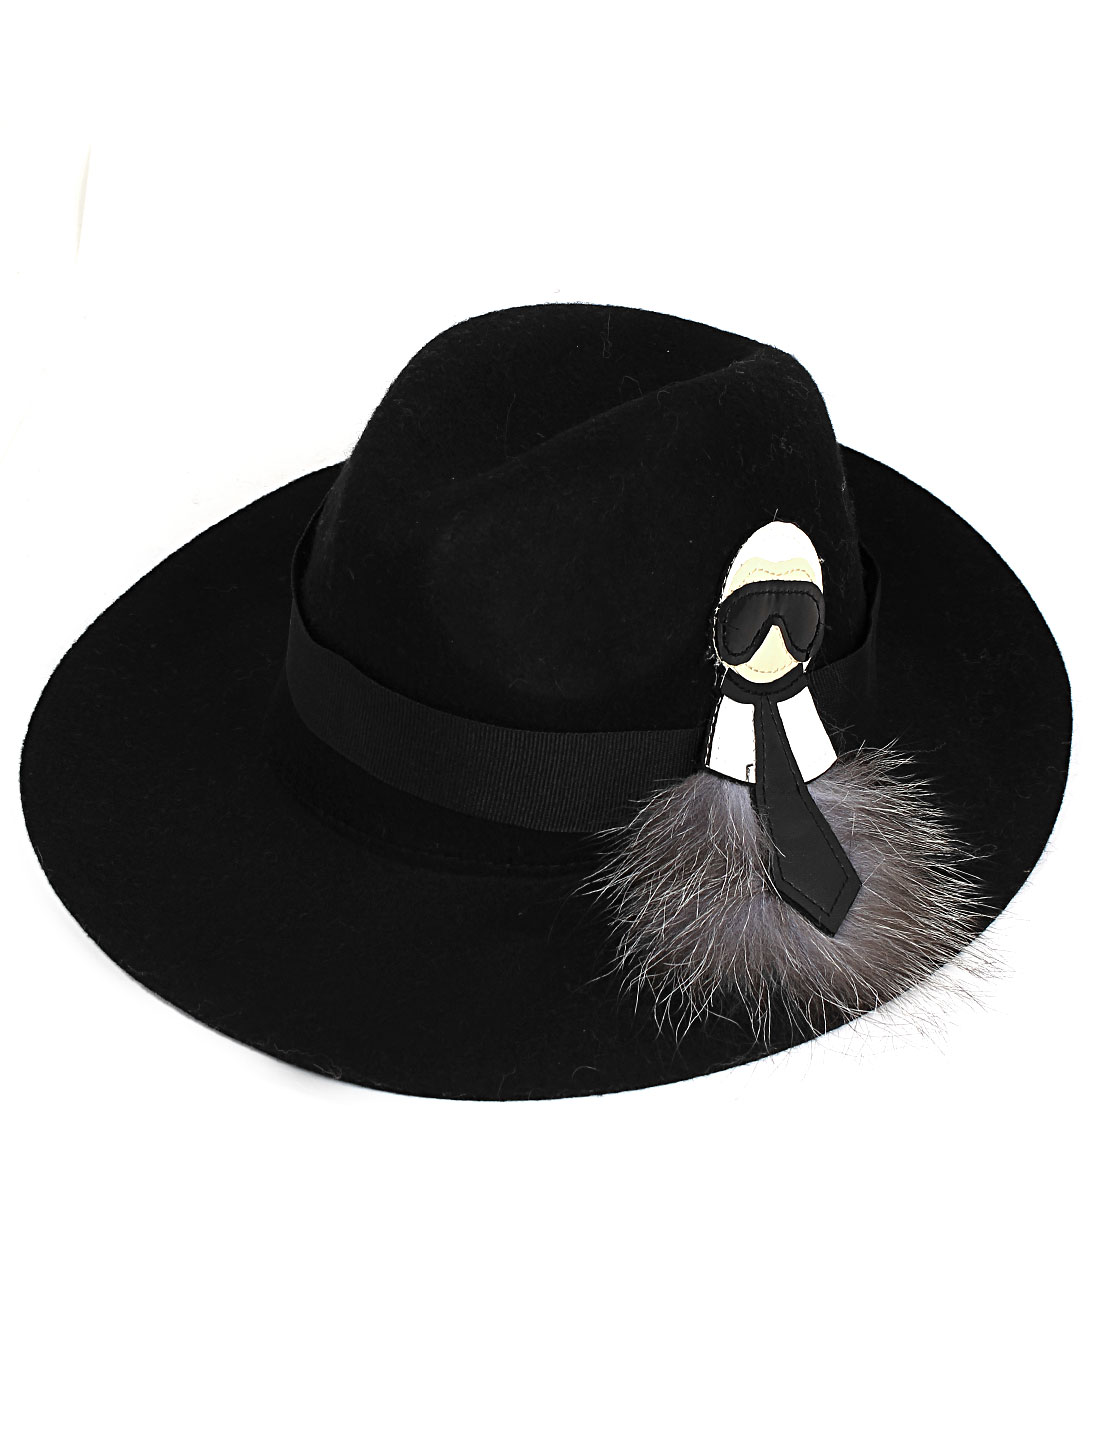 Lady Women Felt Wide Brim Wedding Party Winter Bowler Cloche Hat Cap Black